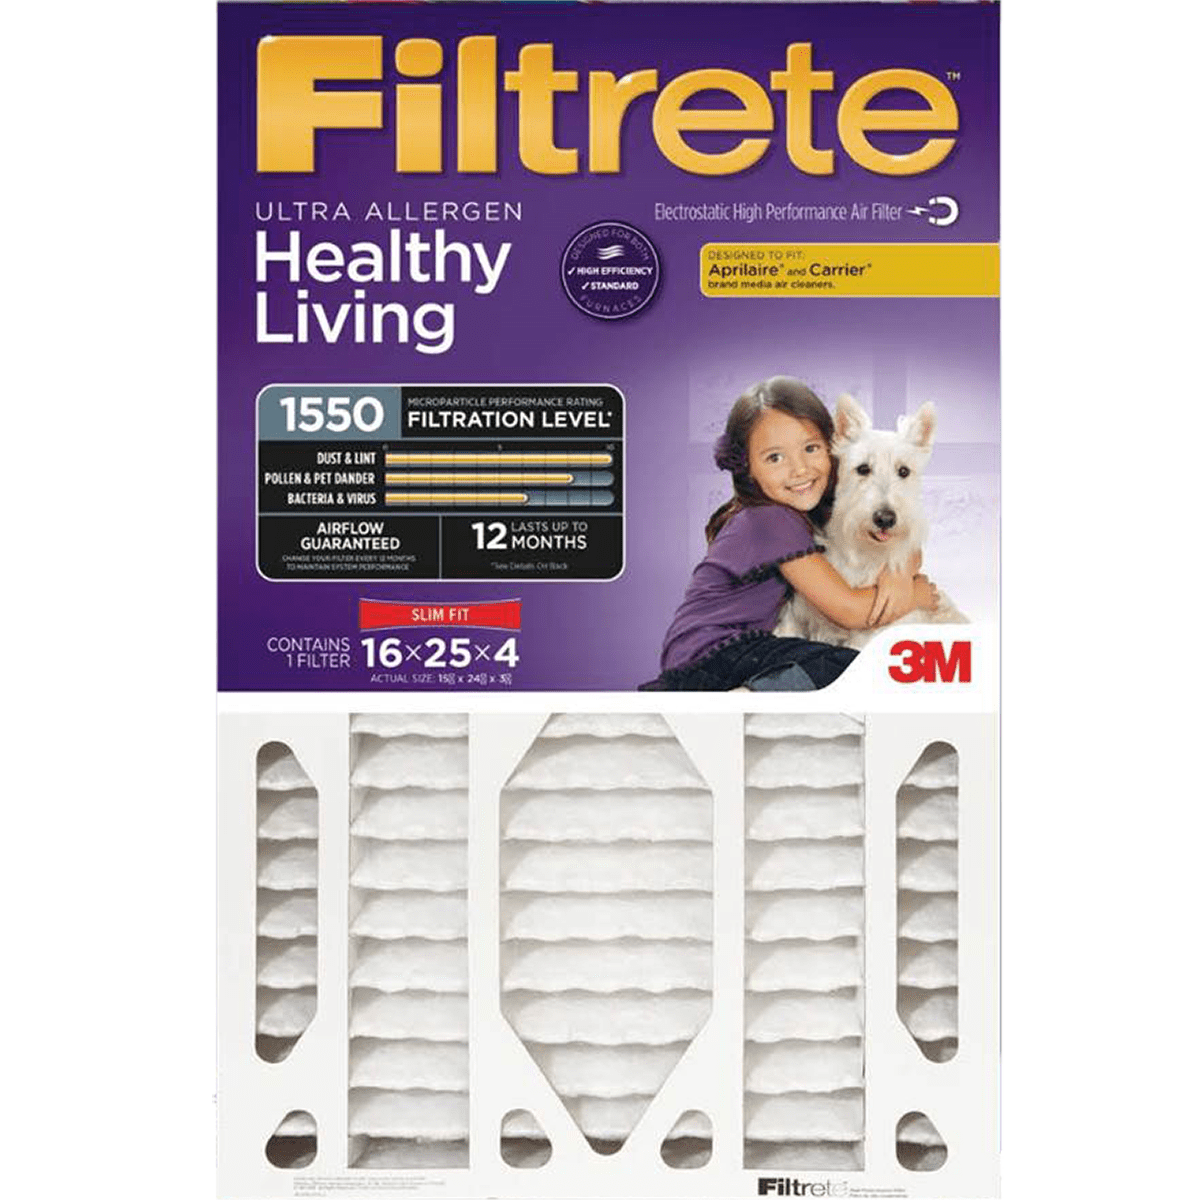 3m Filtrete Healthy Living 1550 Mpr 4-inch Ultra Allergen Reduction Slim-fit Filters